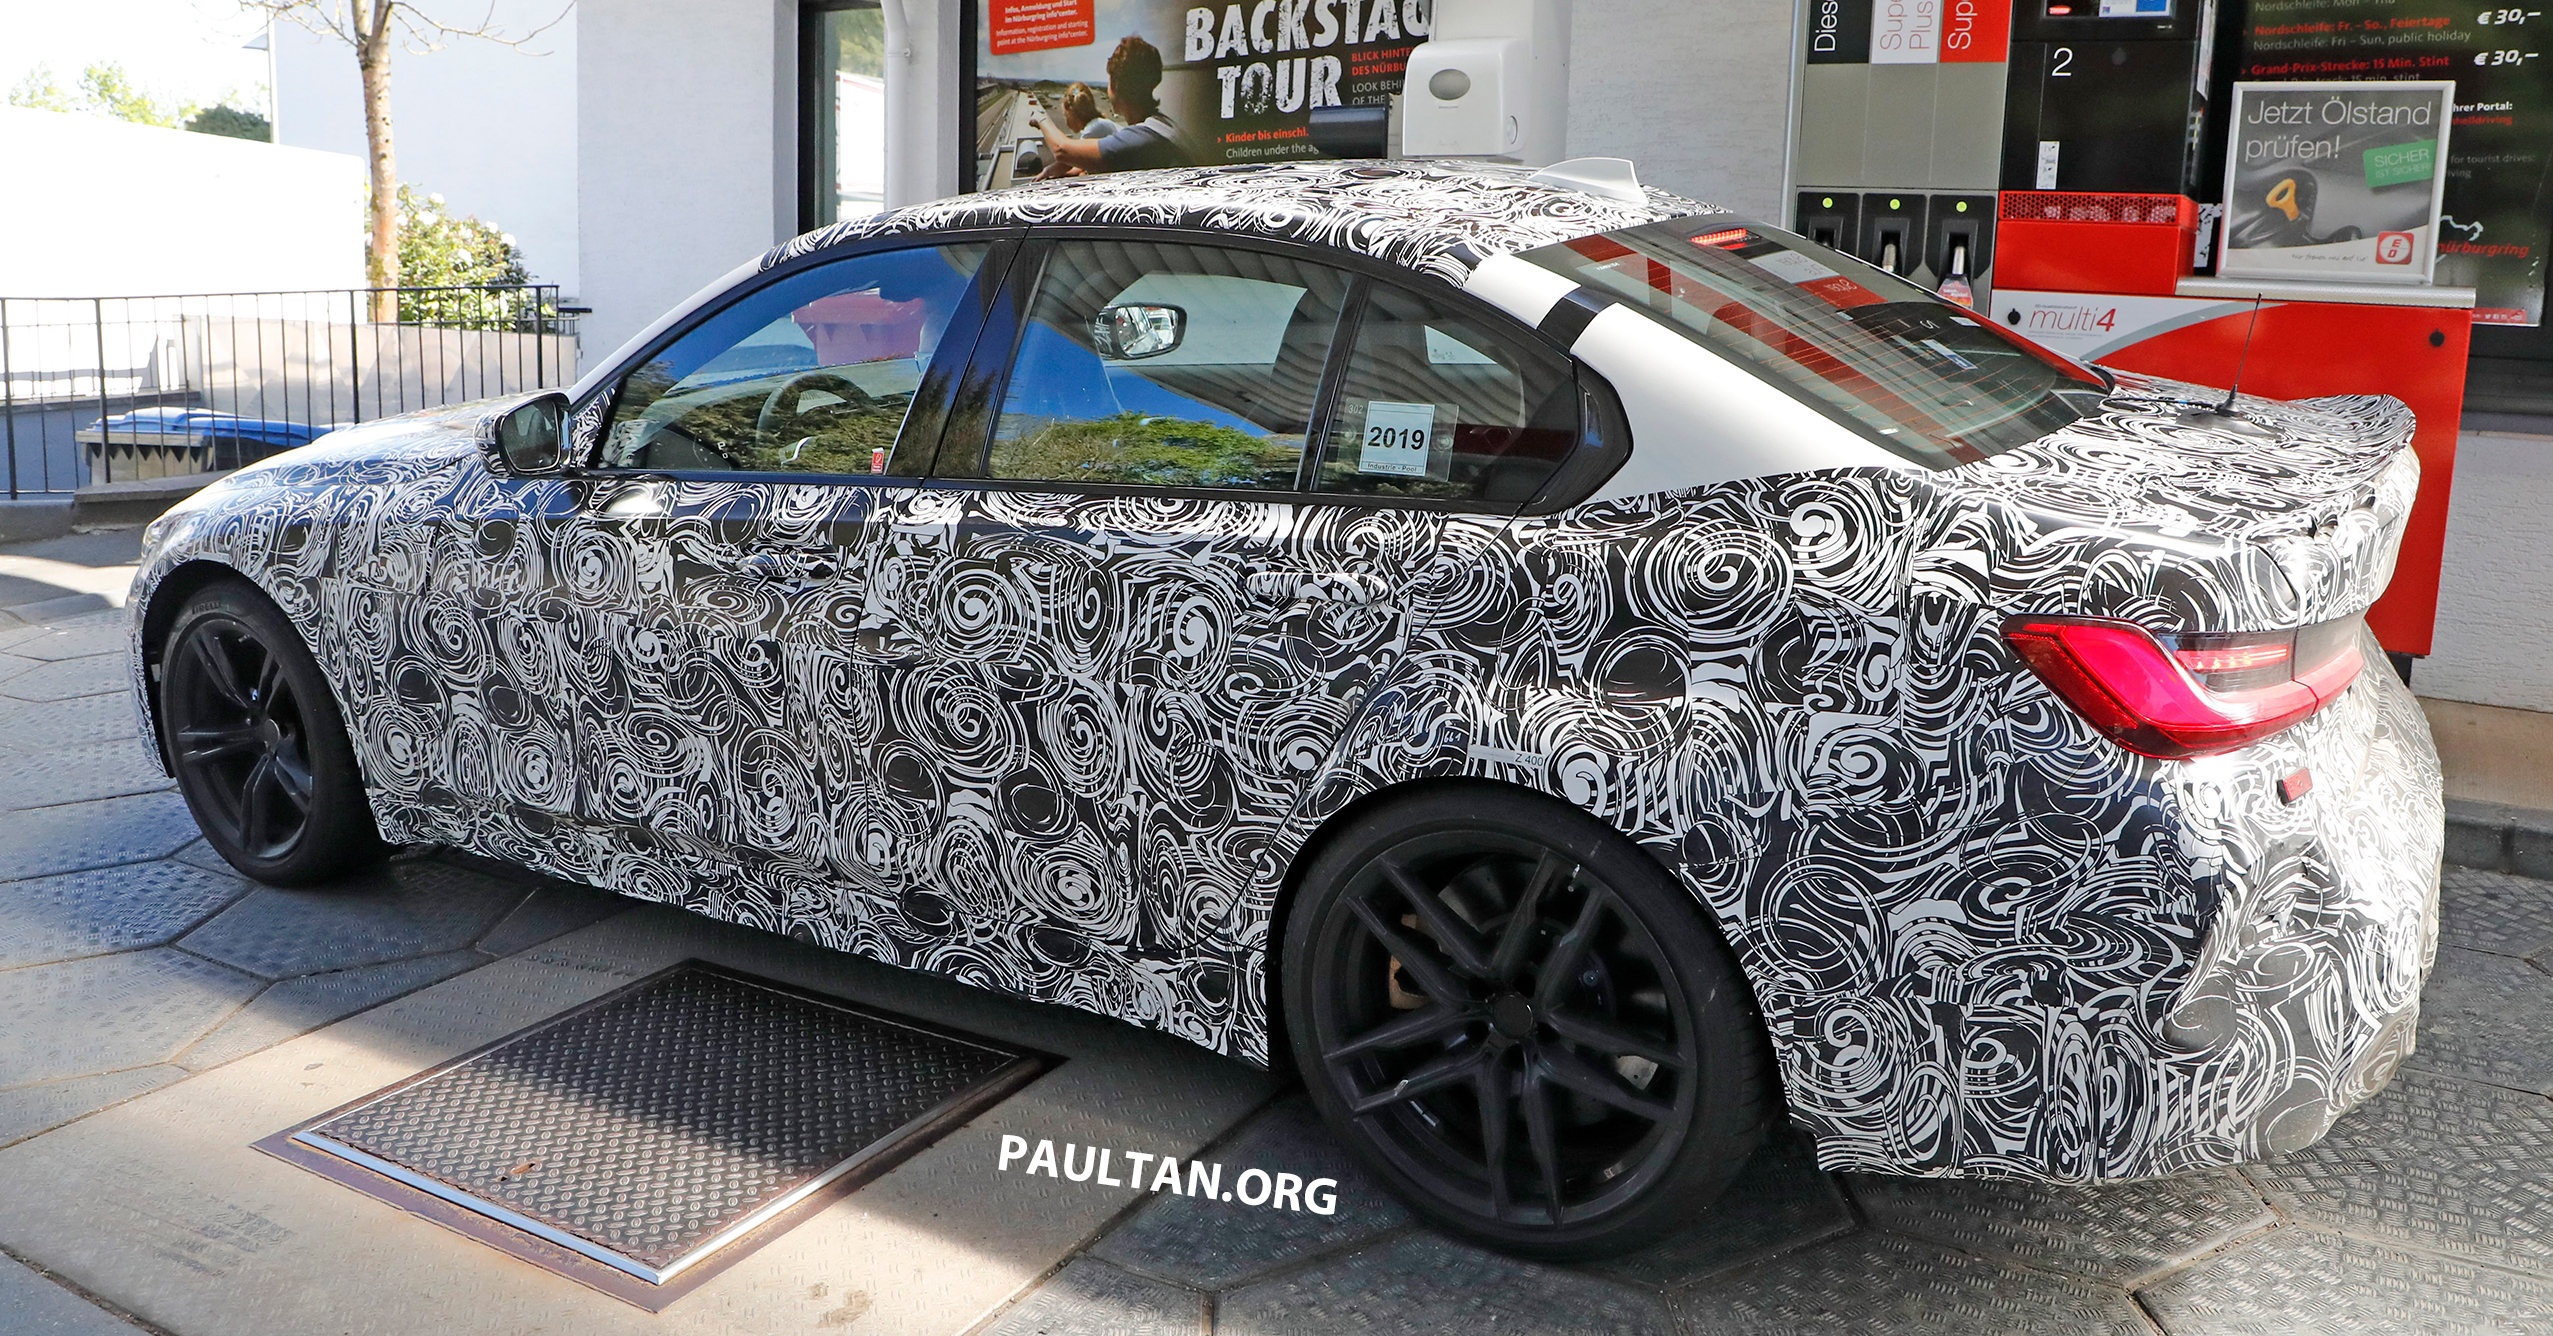 Spyshot G80 Bmw M3 Interior Seen For The First Time Paul Tan